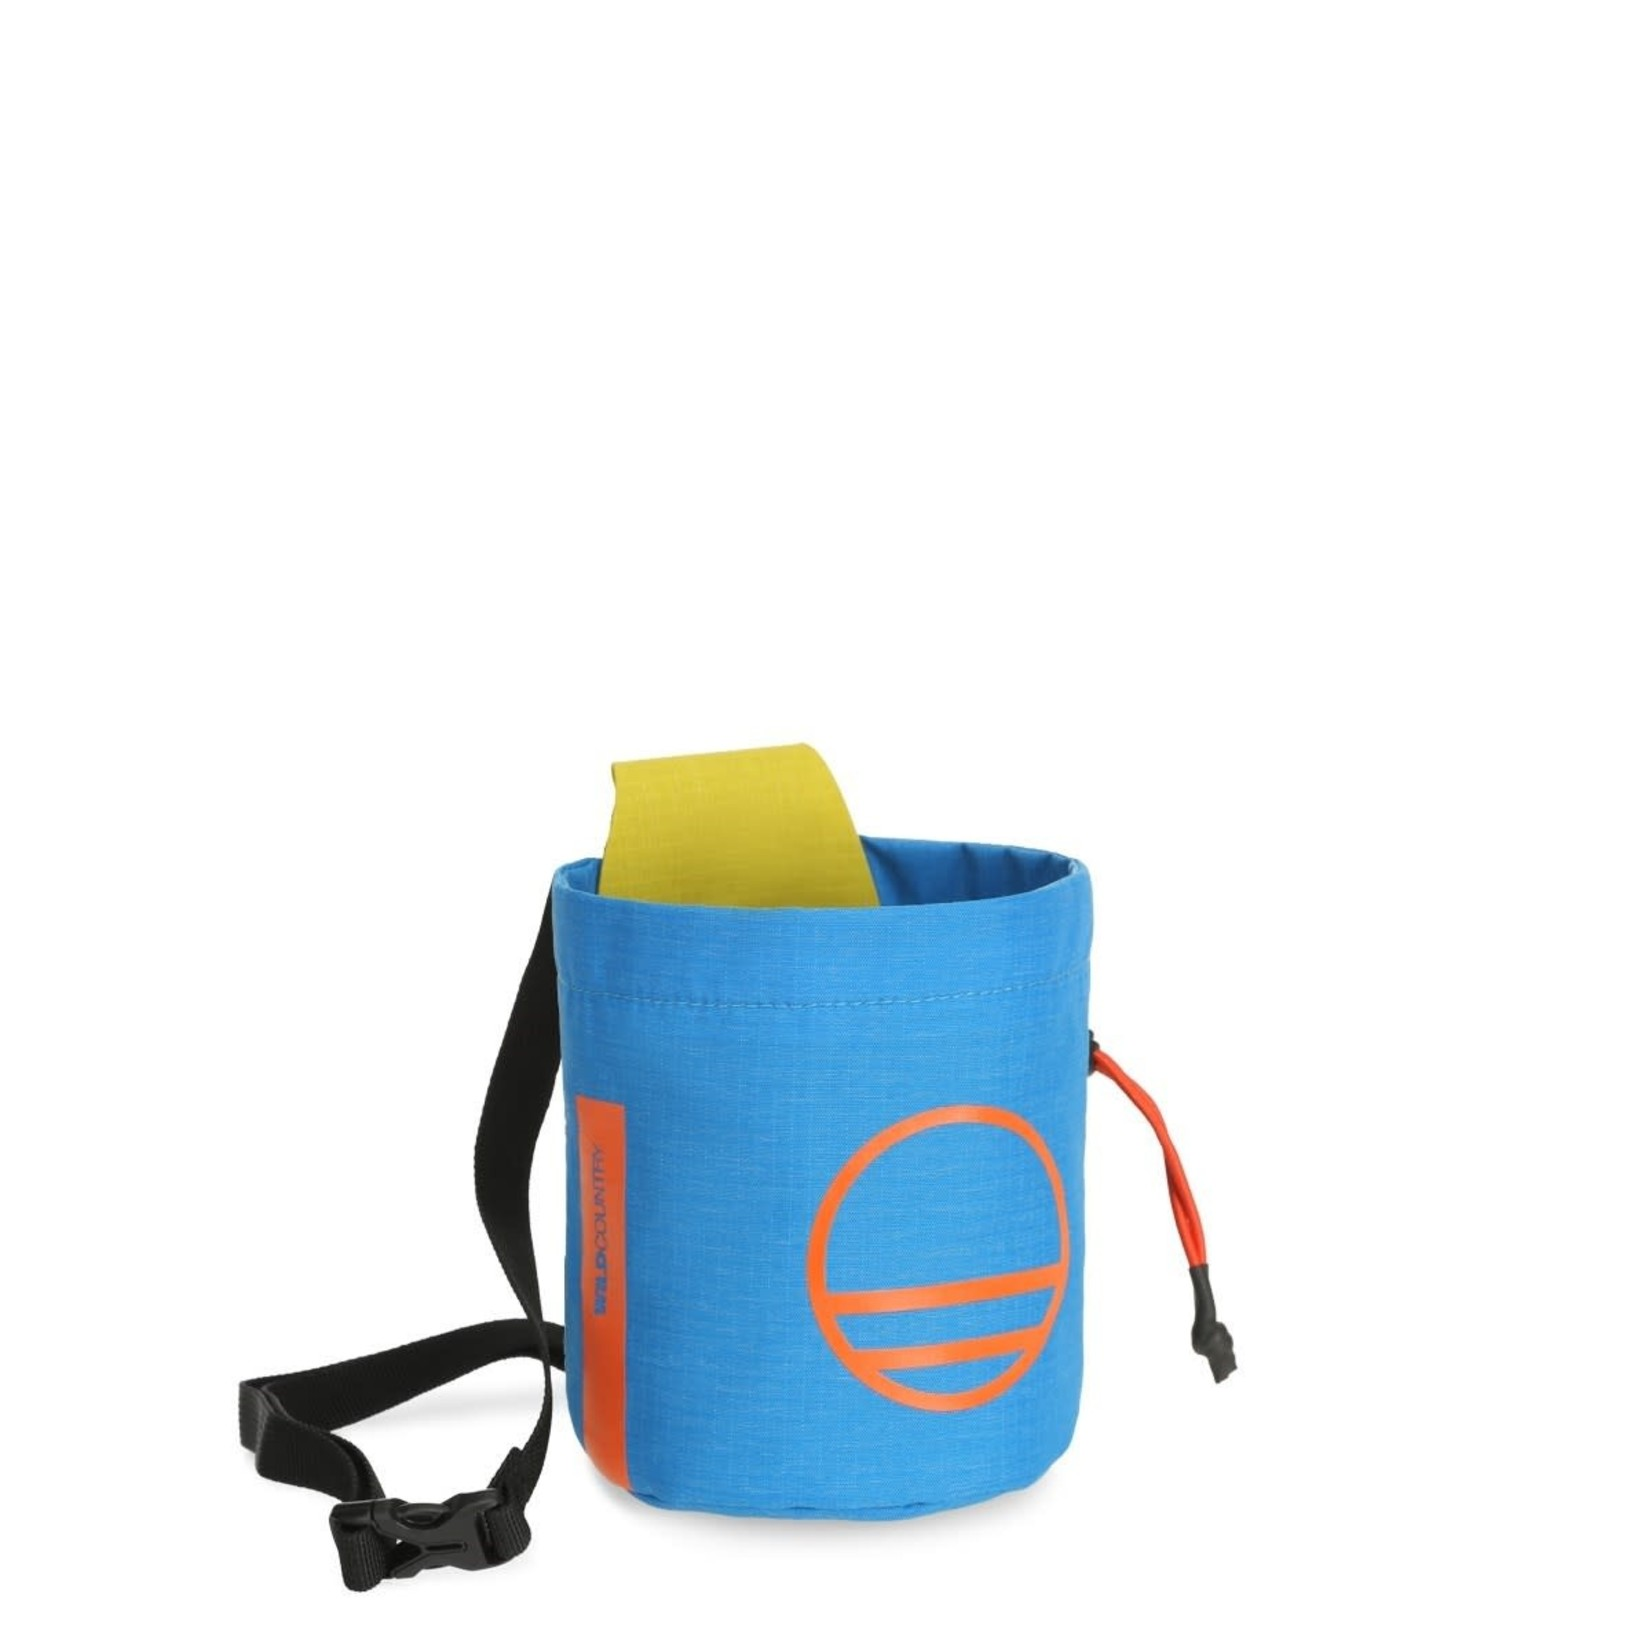 Wild Country Session Chalkbag